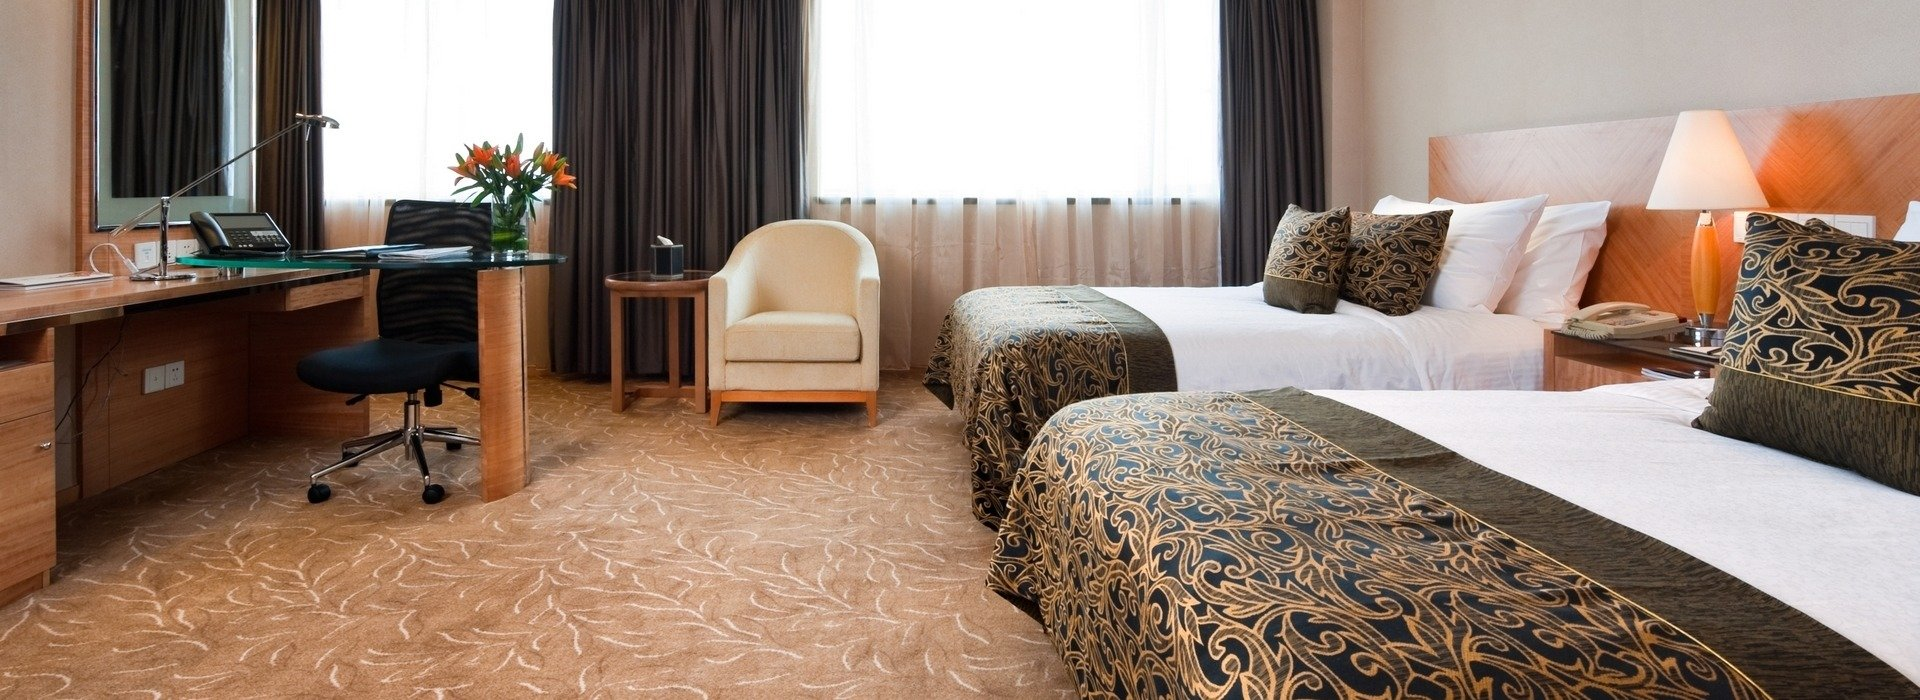 Hotels around Buda Castle - Budapest Buda castle hotels